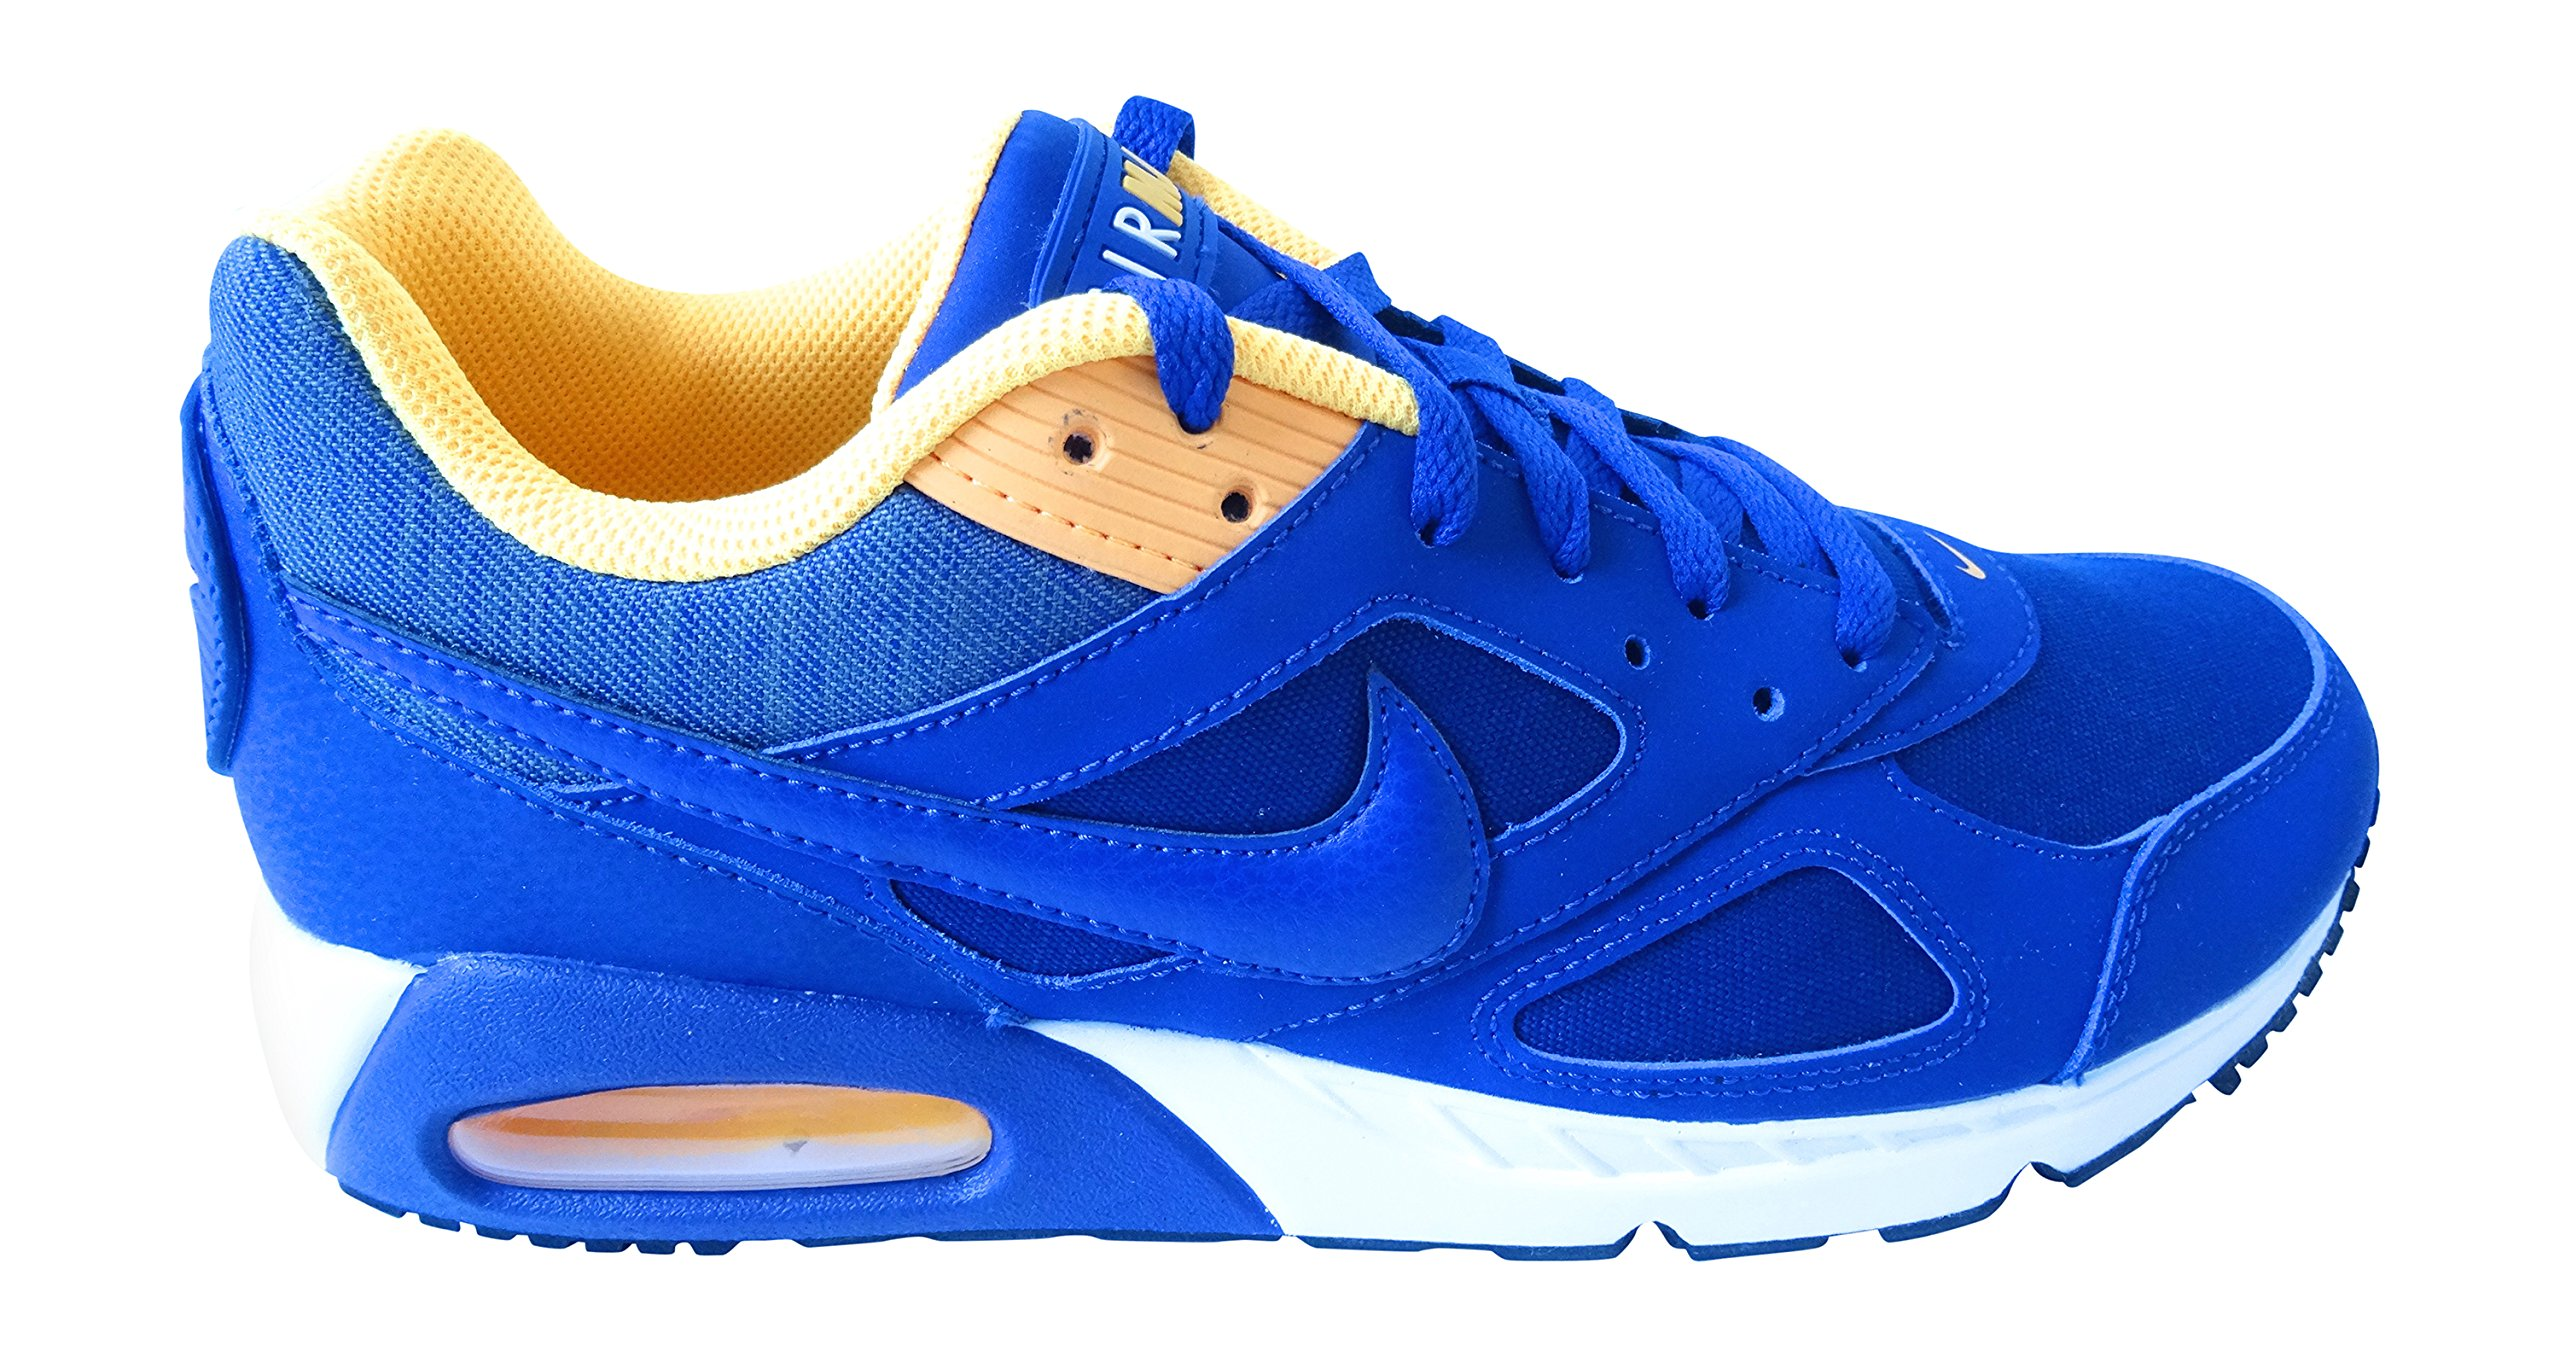 nike air max IVO mens running trainers 580518 448 sneakers shoes